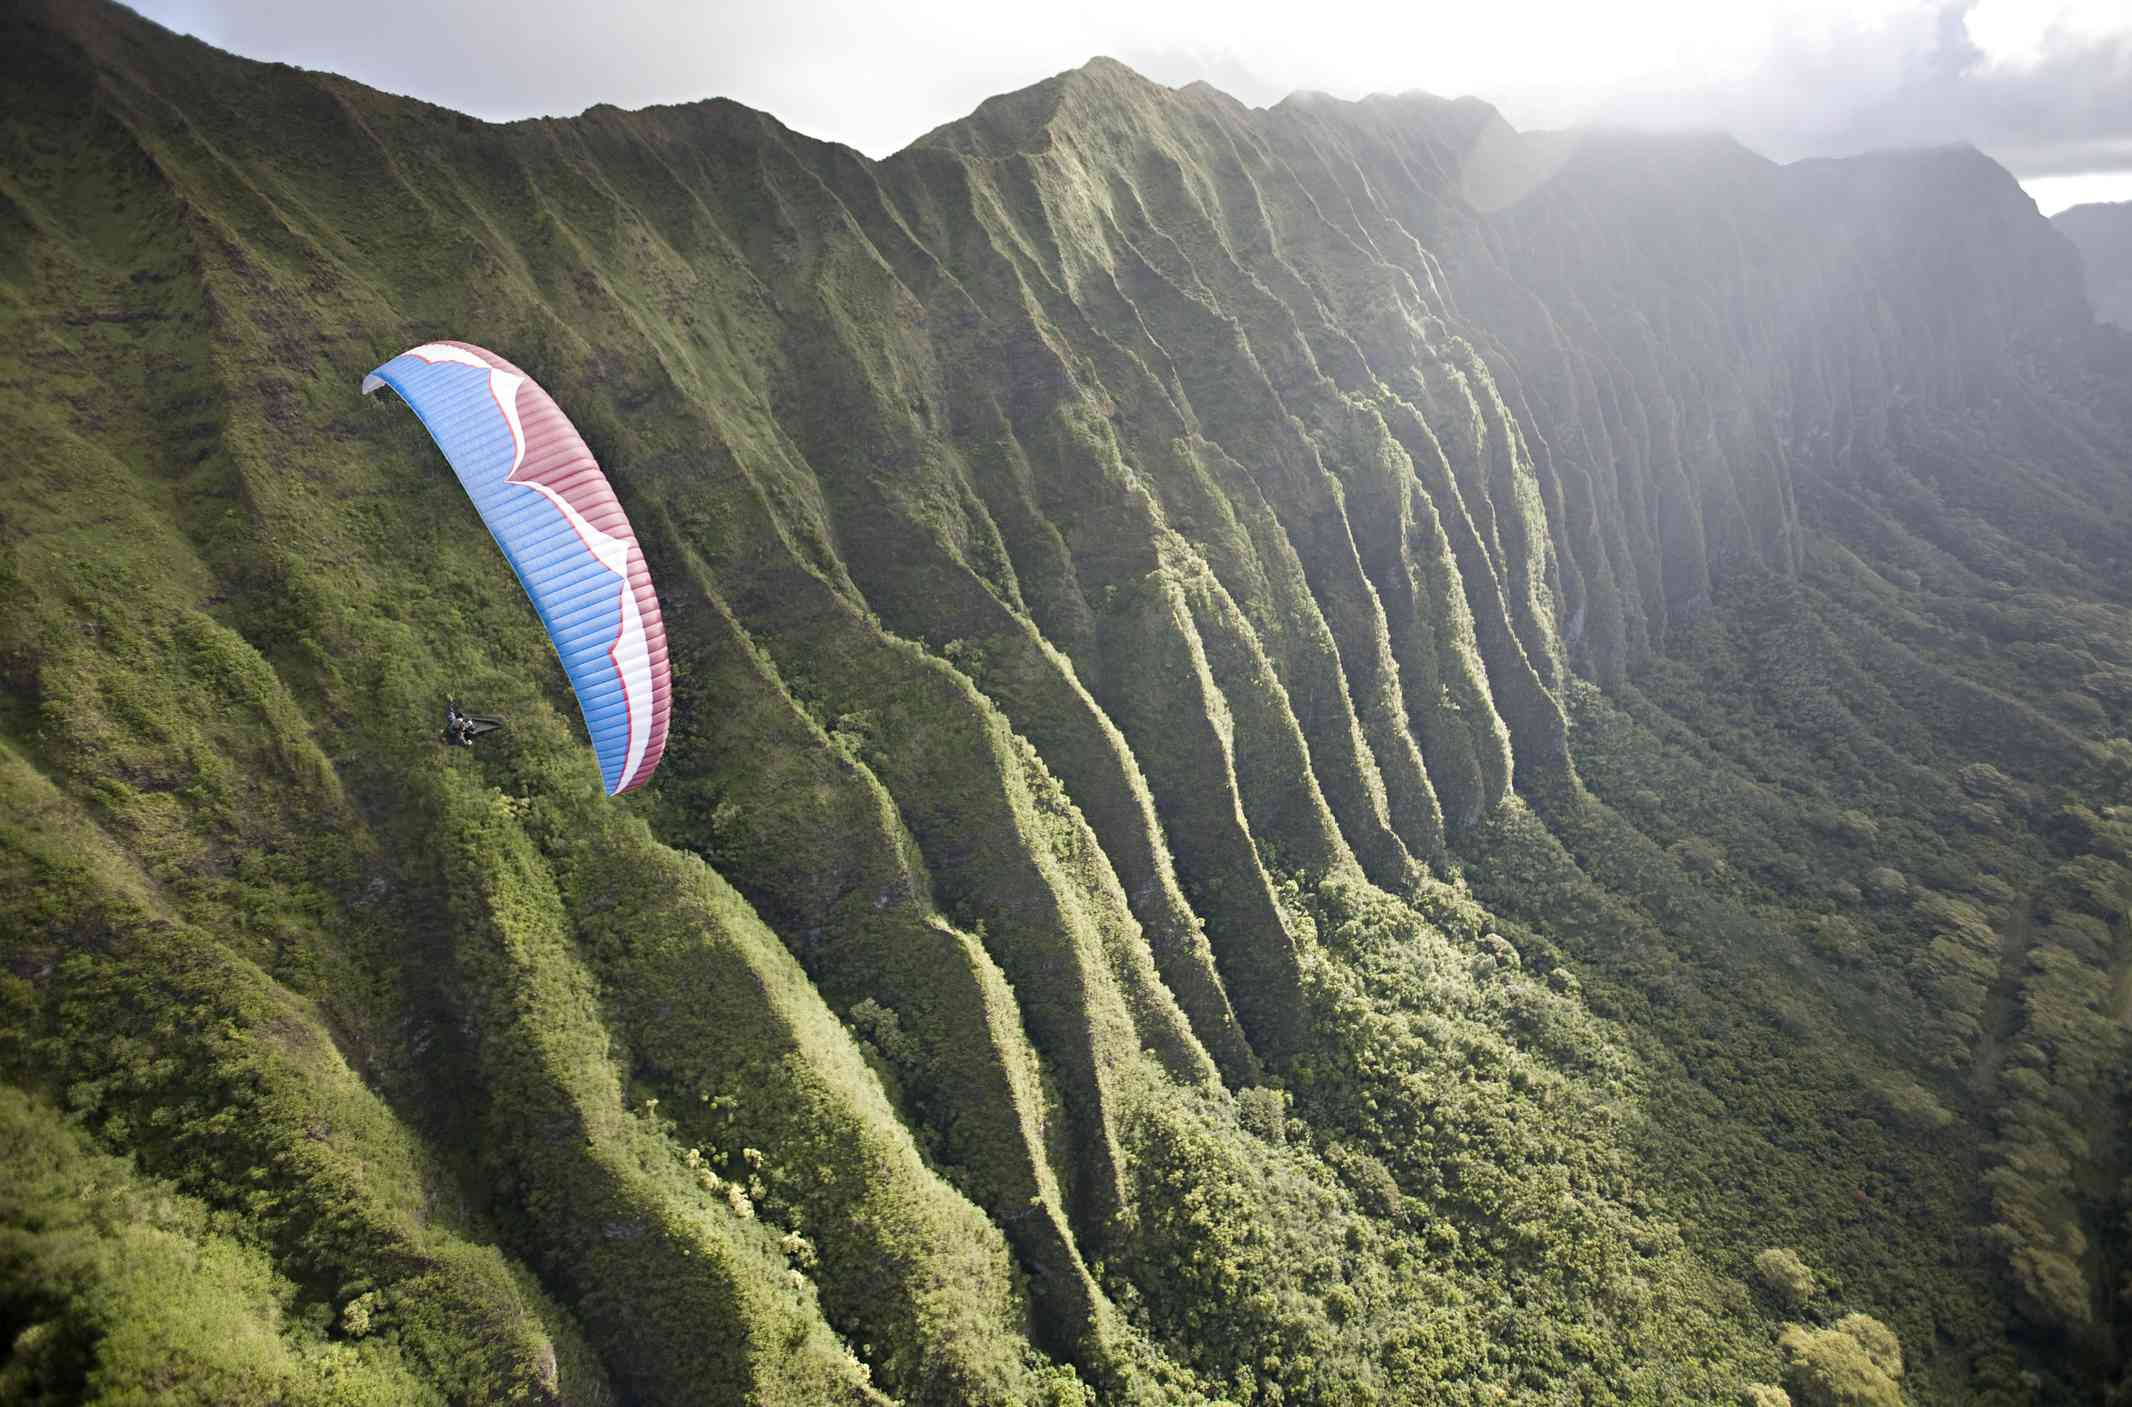 folded green cliffs with blue and red paraglider in foreground